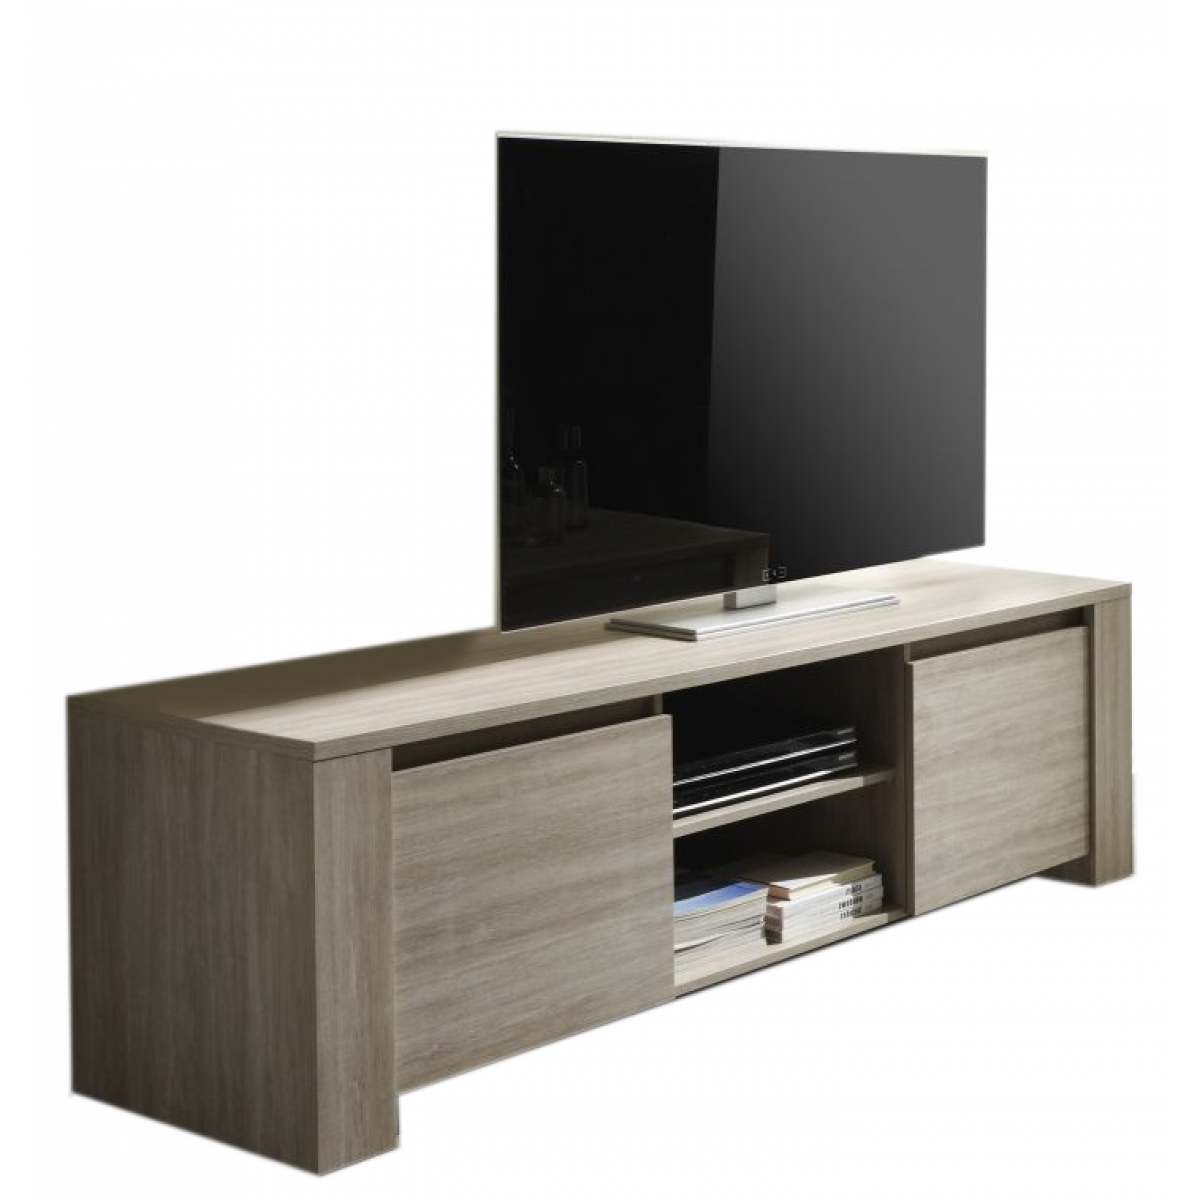 meuble tv transparent pas cher sammlung von. Black Bedroom Furniture Sets. Home Design Ideas